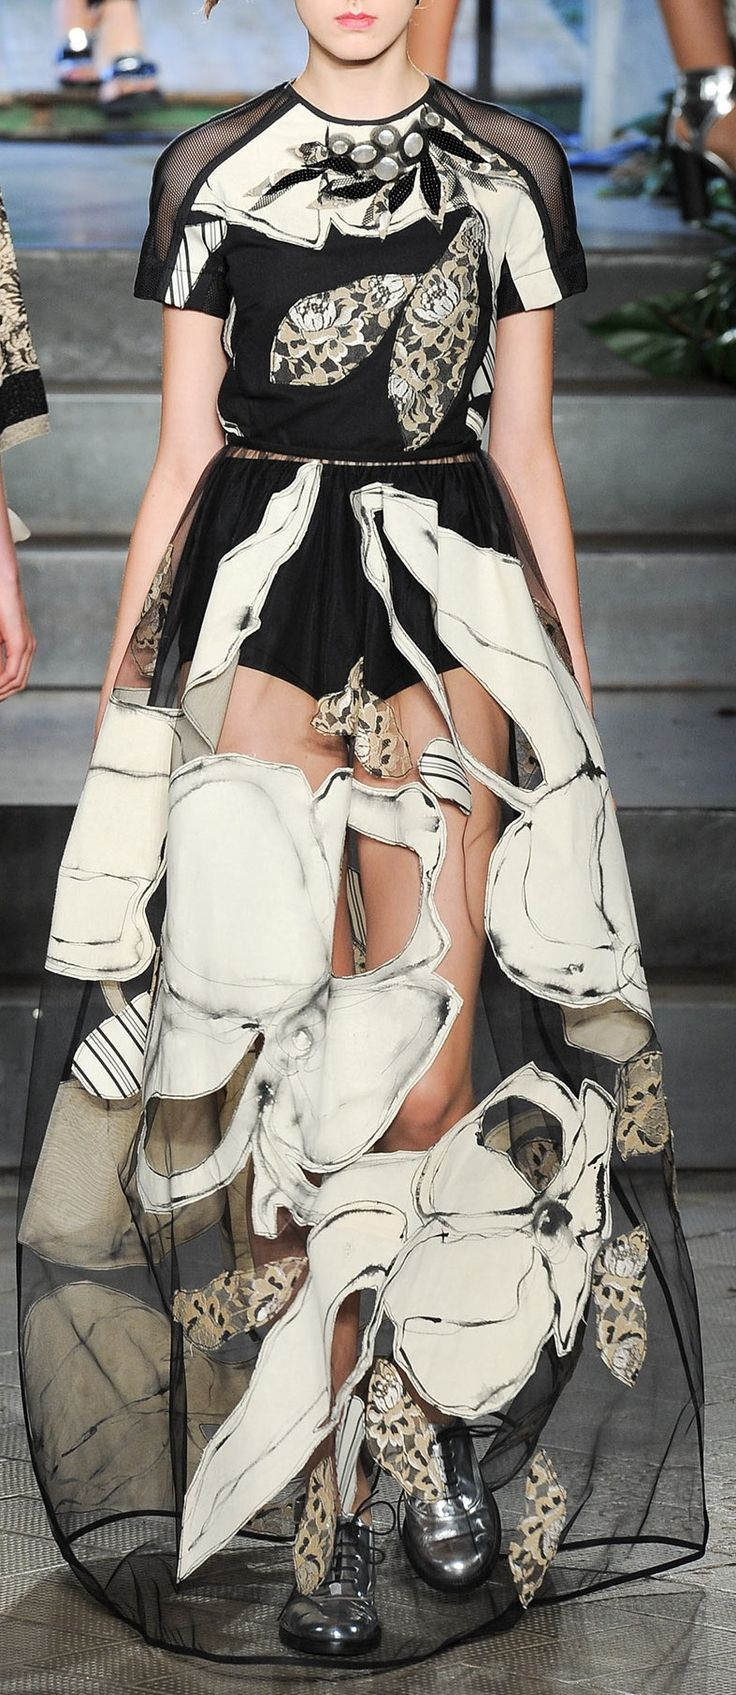 Antonio Marras | Spring '14 - big illustrated prints and detail & structure